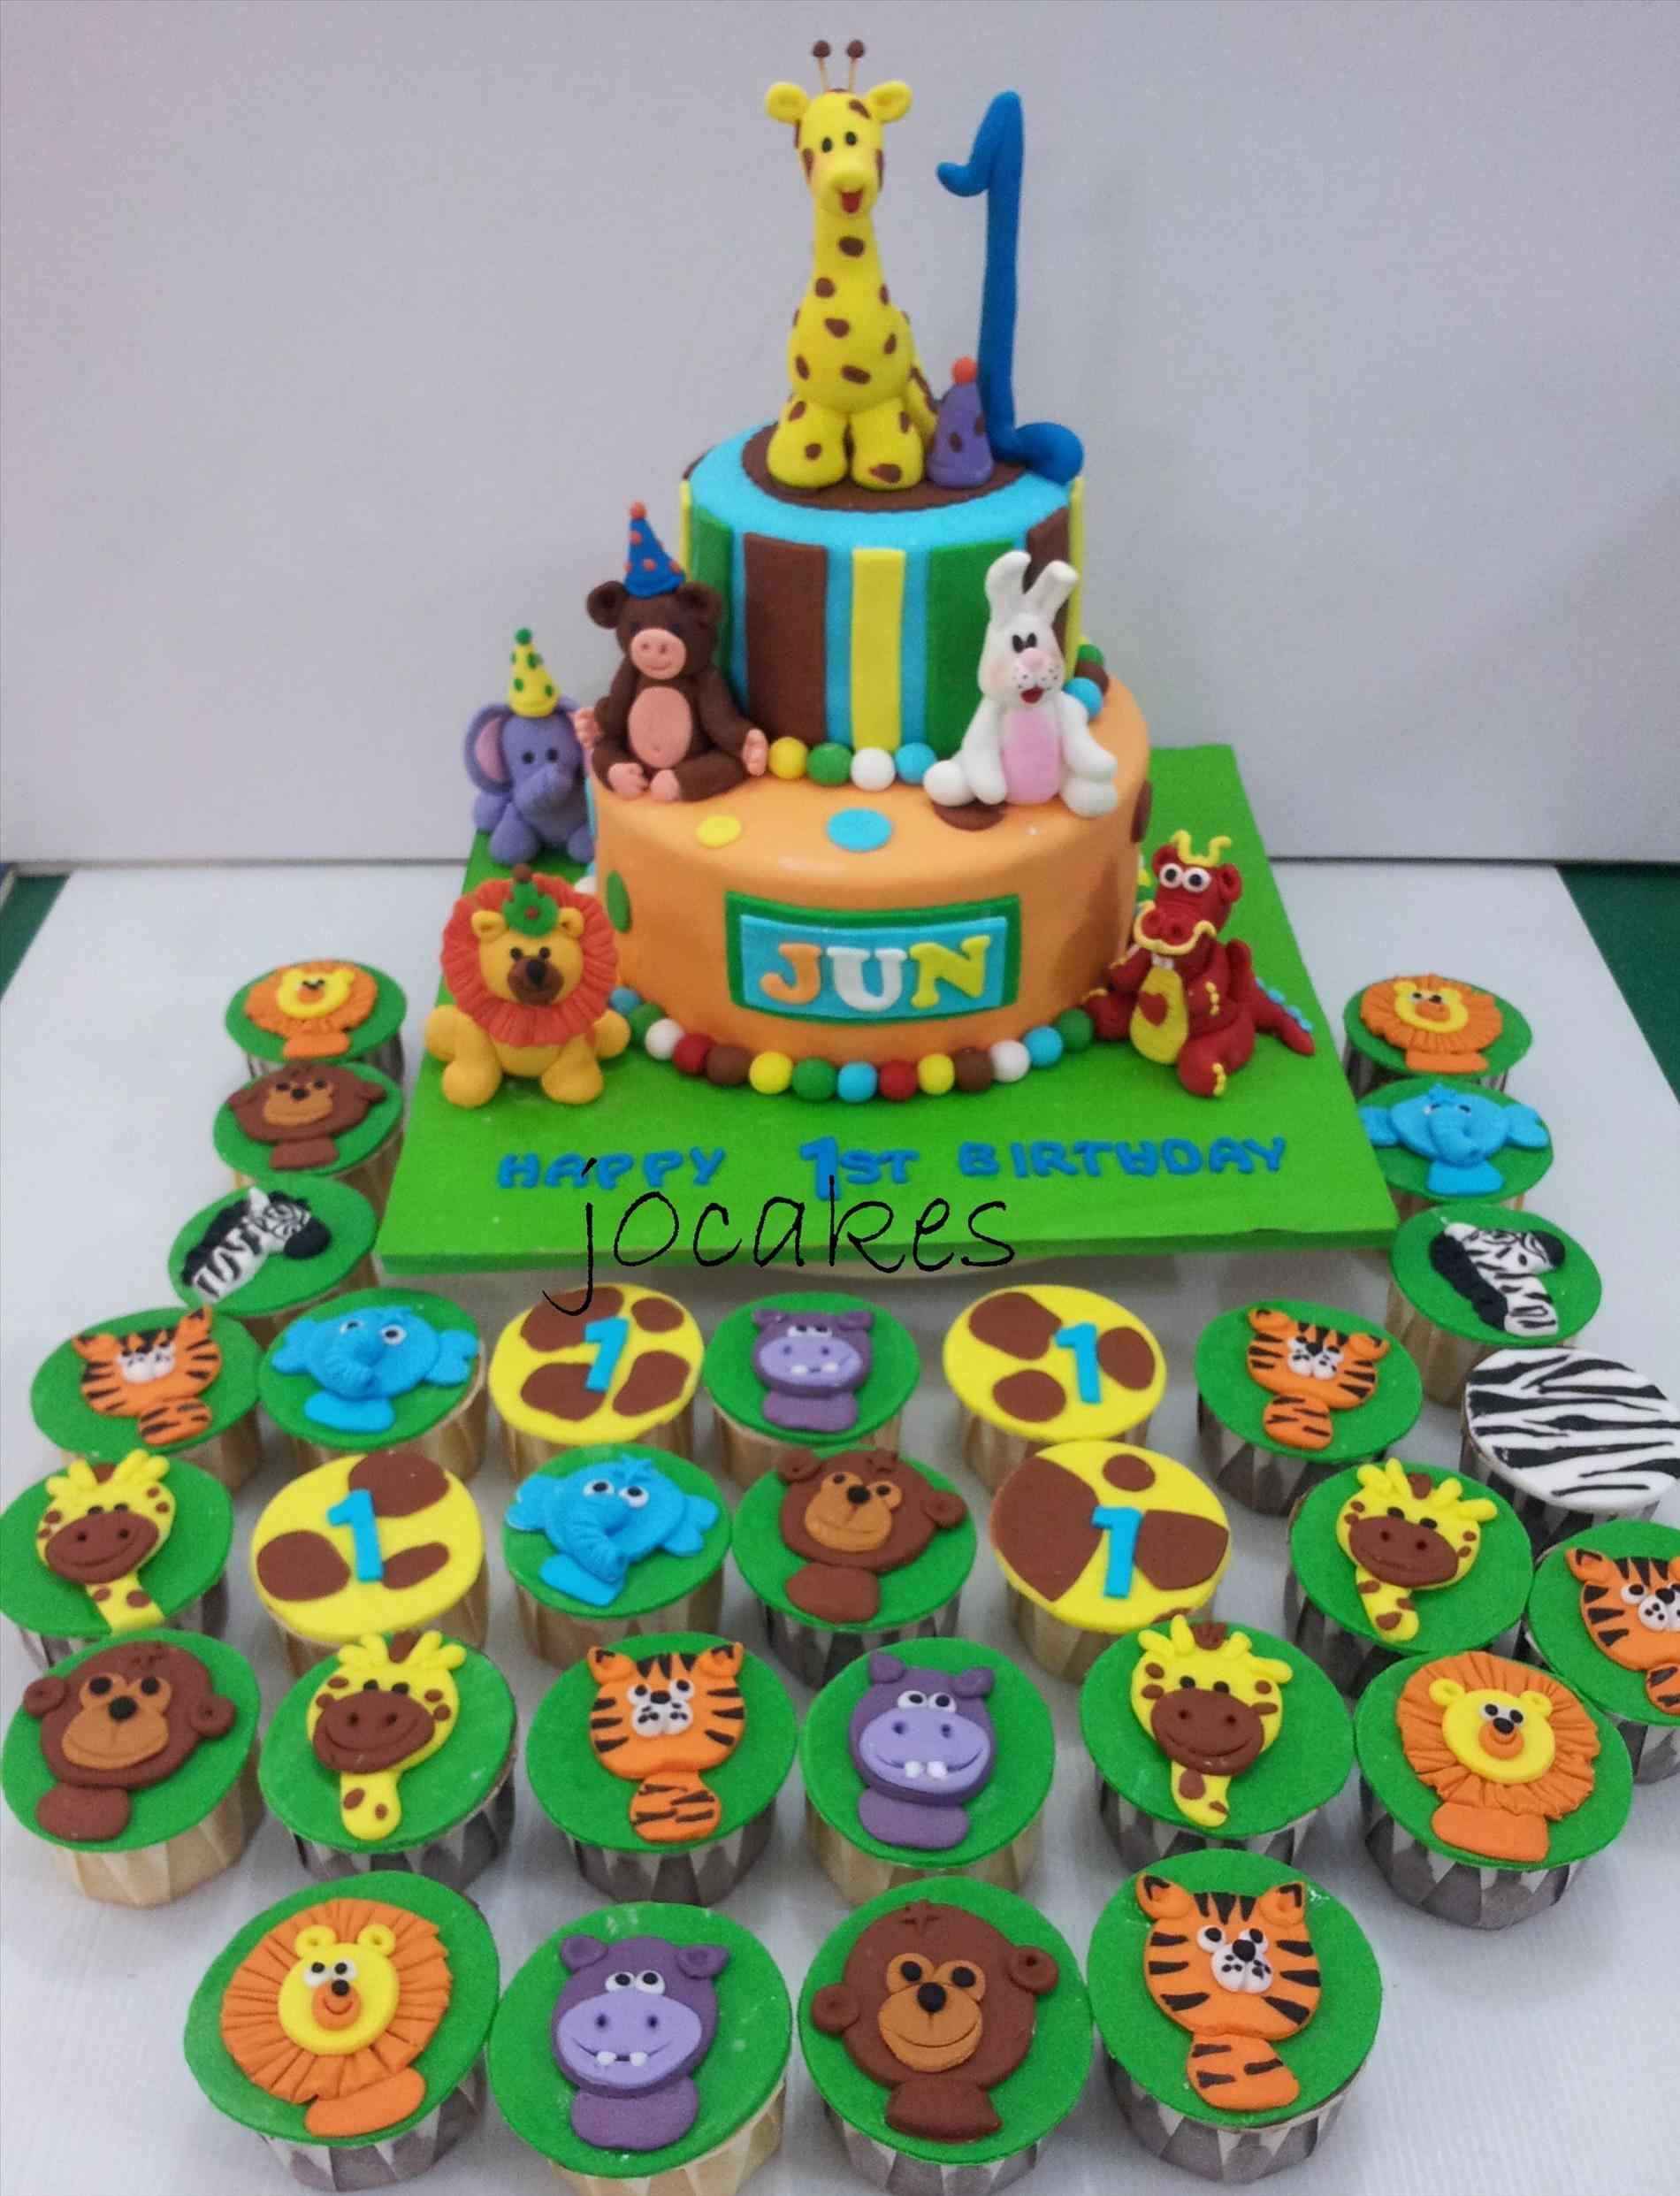 birthday party themes for 1 year old ; amazing-unicorn-theme-ideas-about-theme-birthday-party-themes-for-1-year-old